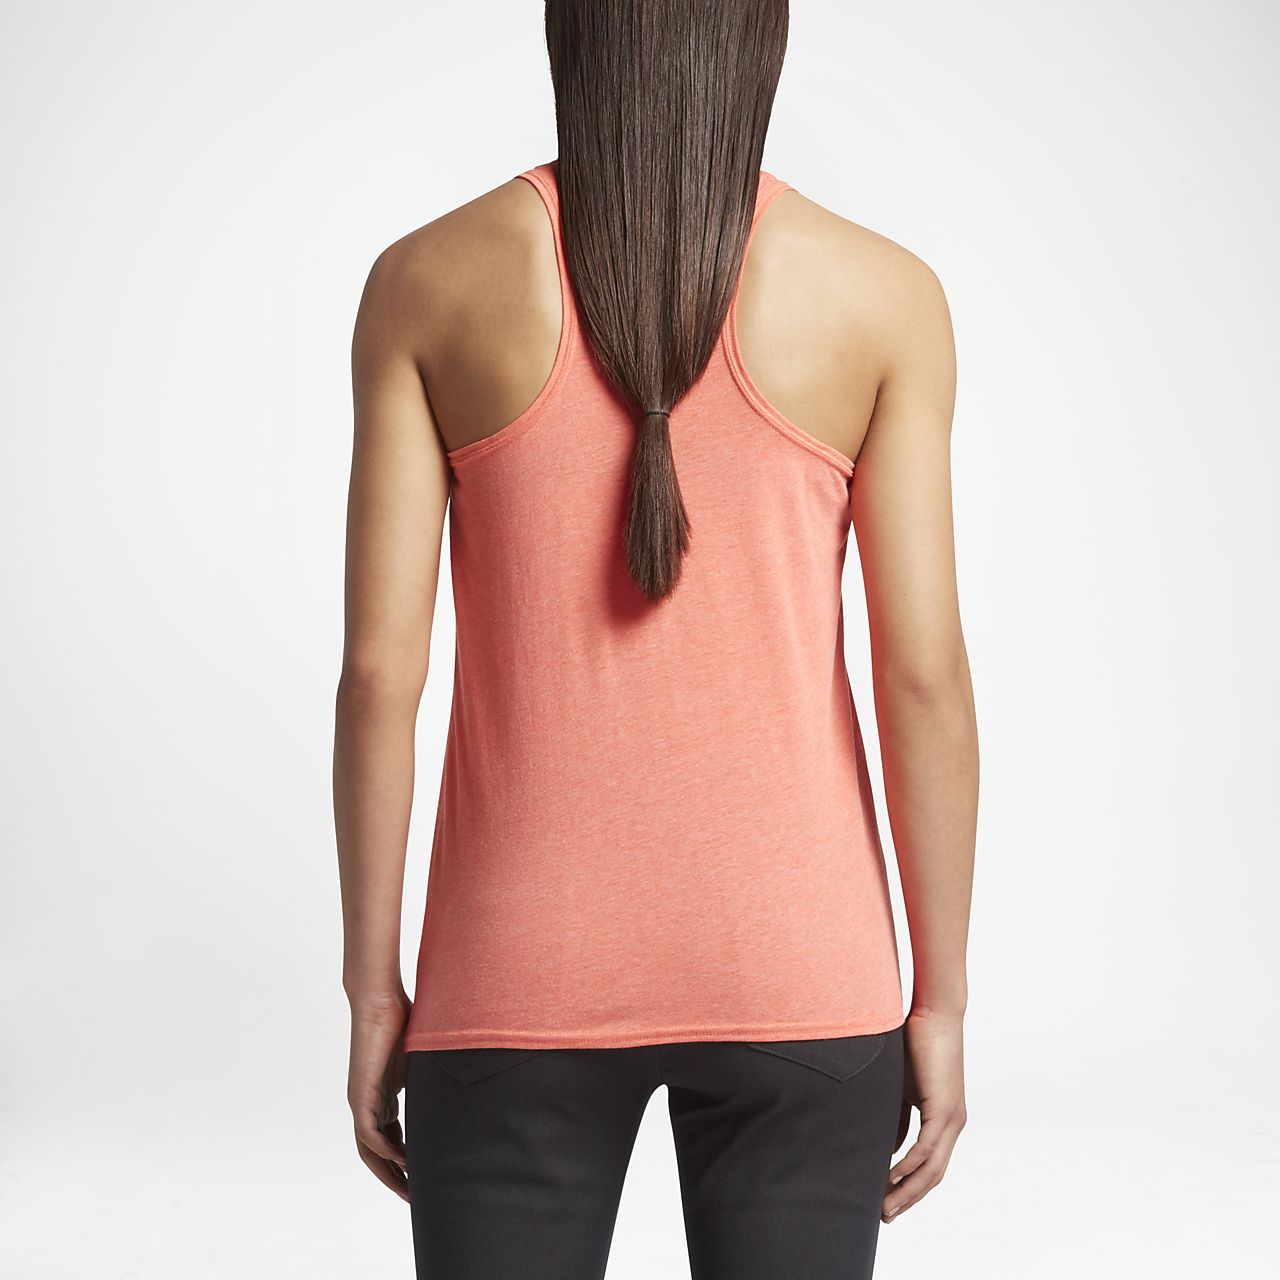 Low Resolution Hurley Staple Perfect Women's Tank Hurley Staple Perfect  Women's Tank